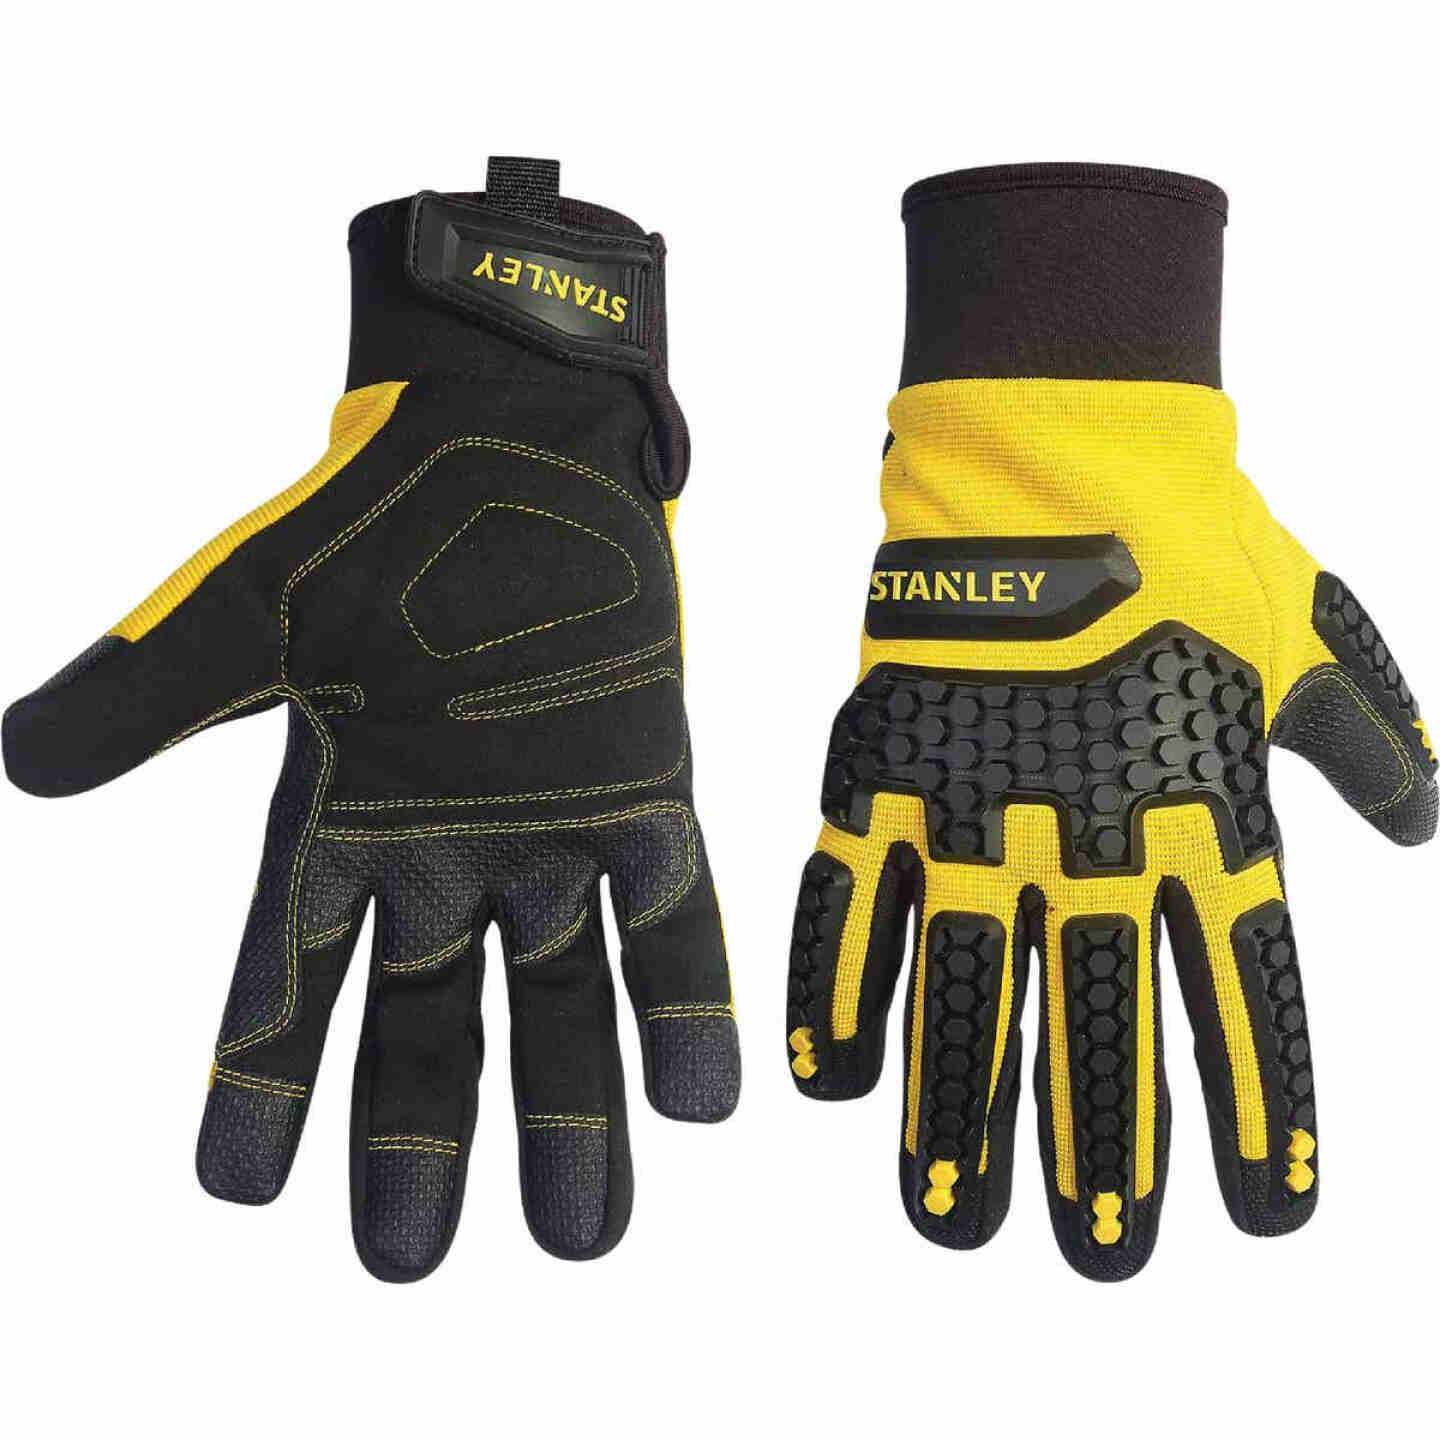 Stanley Impact Pro Men's Medium Synthetic Leather High Performance Glove Image 1